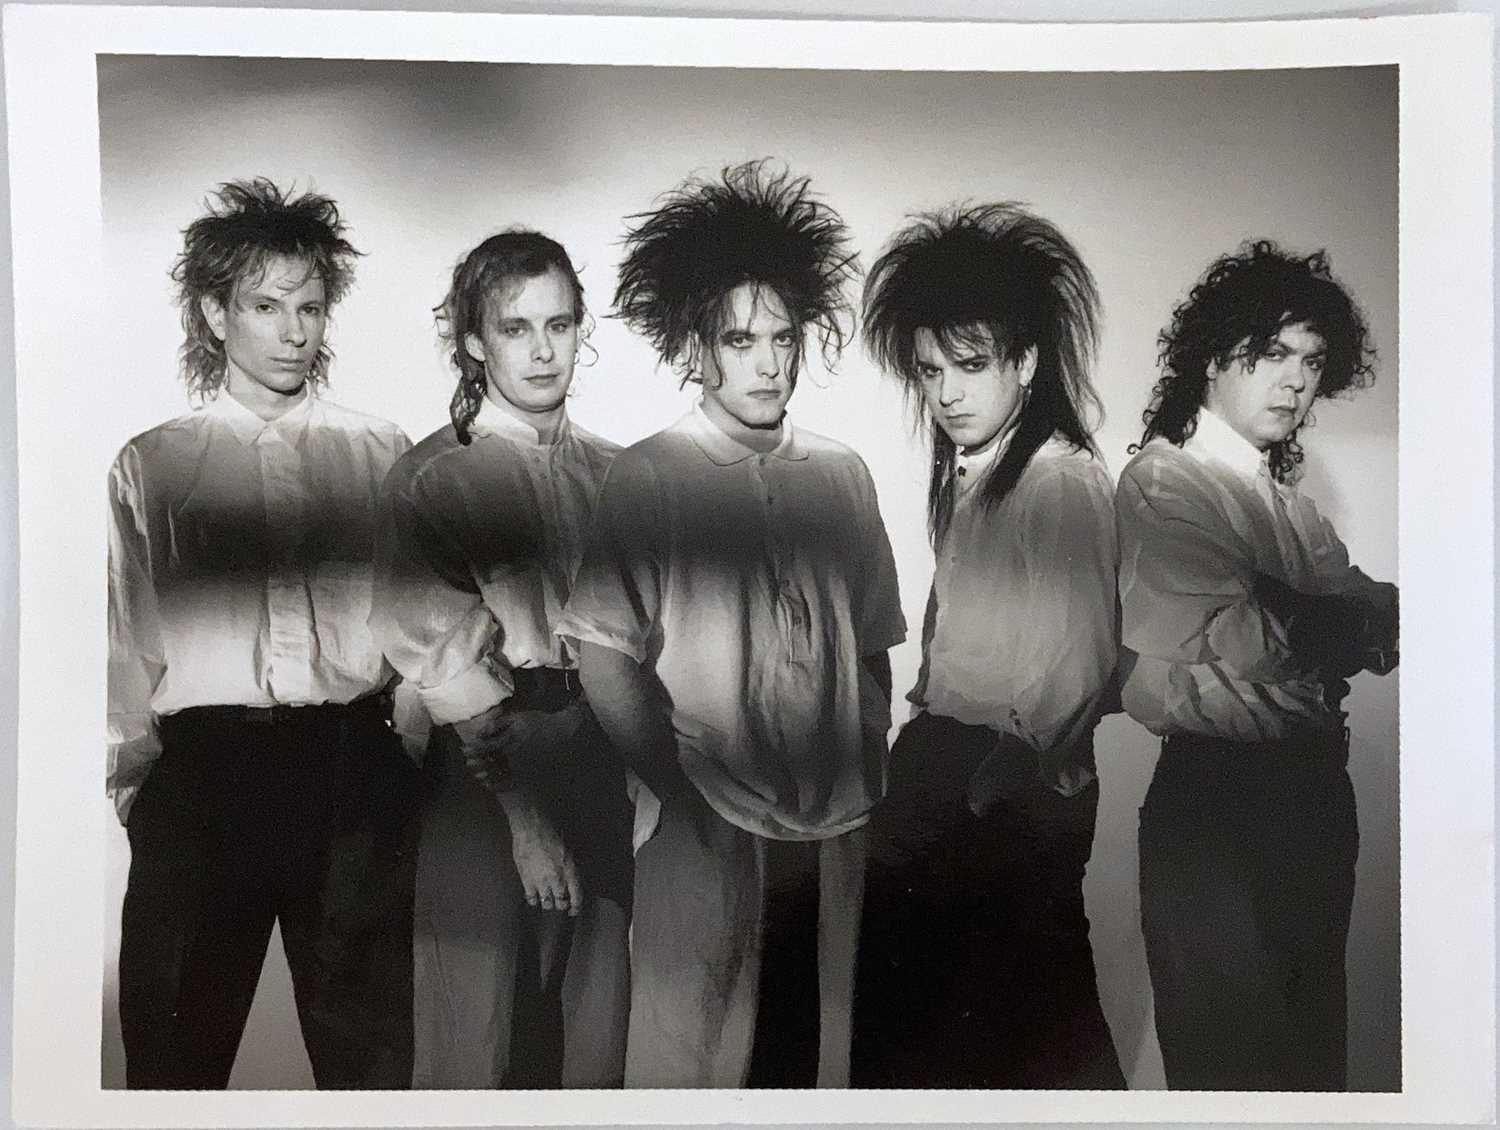 MUSIC PHOTOGRAPHS - THE CURE. - Image 4 of 5